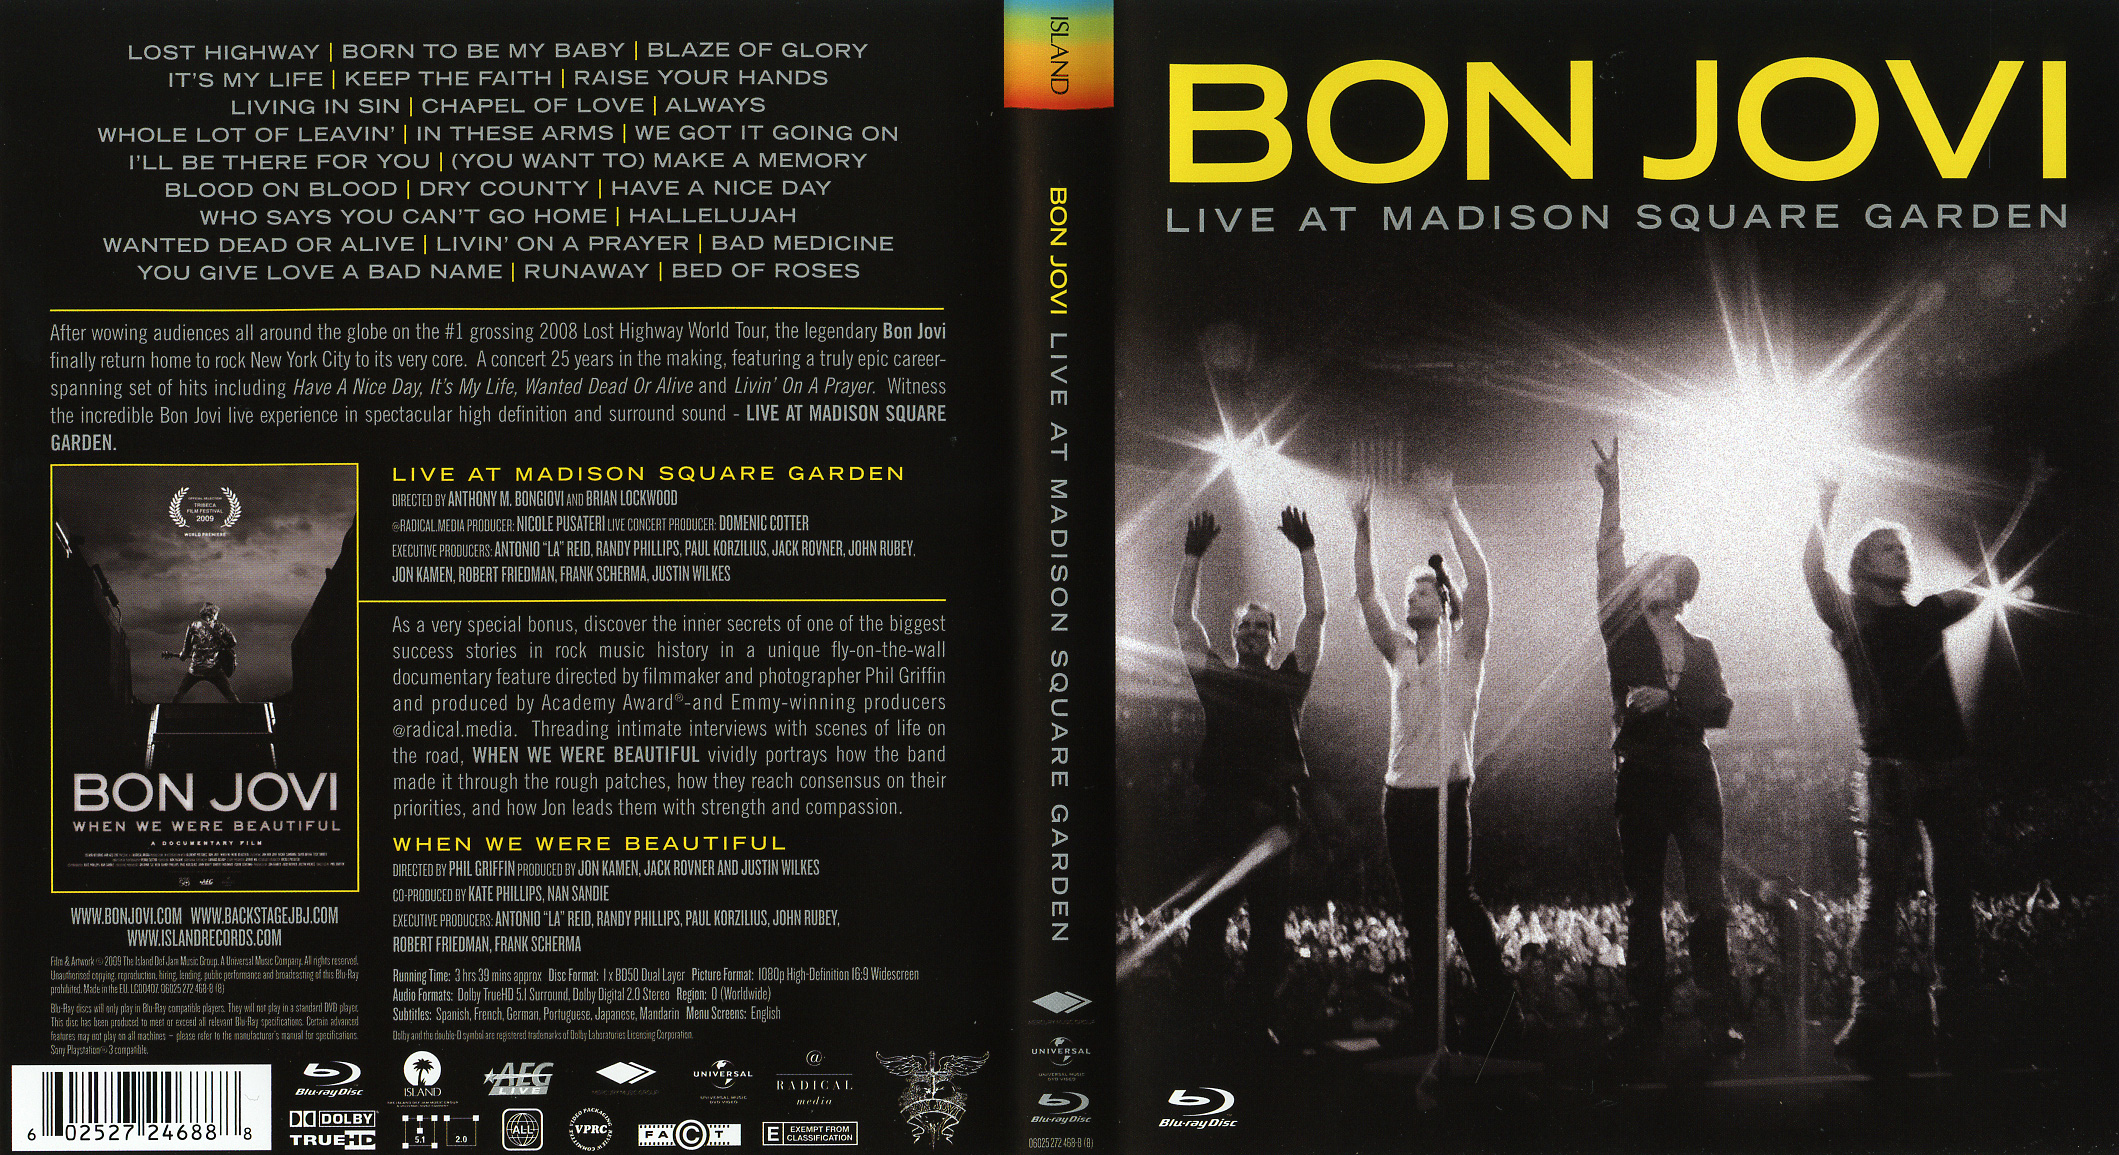 Bon jovi live at madison square garden blu ray cd sniper reference collection of high for Bon jovi madison square garden